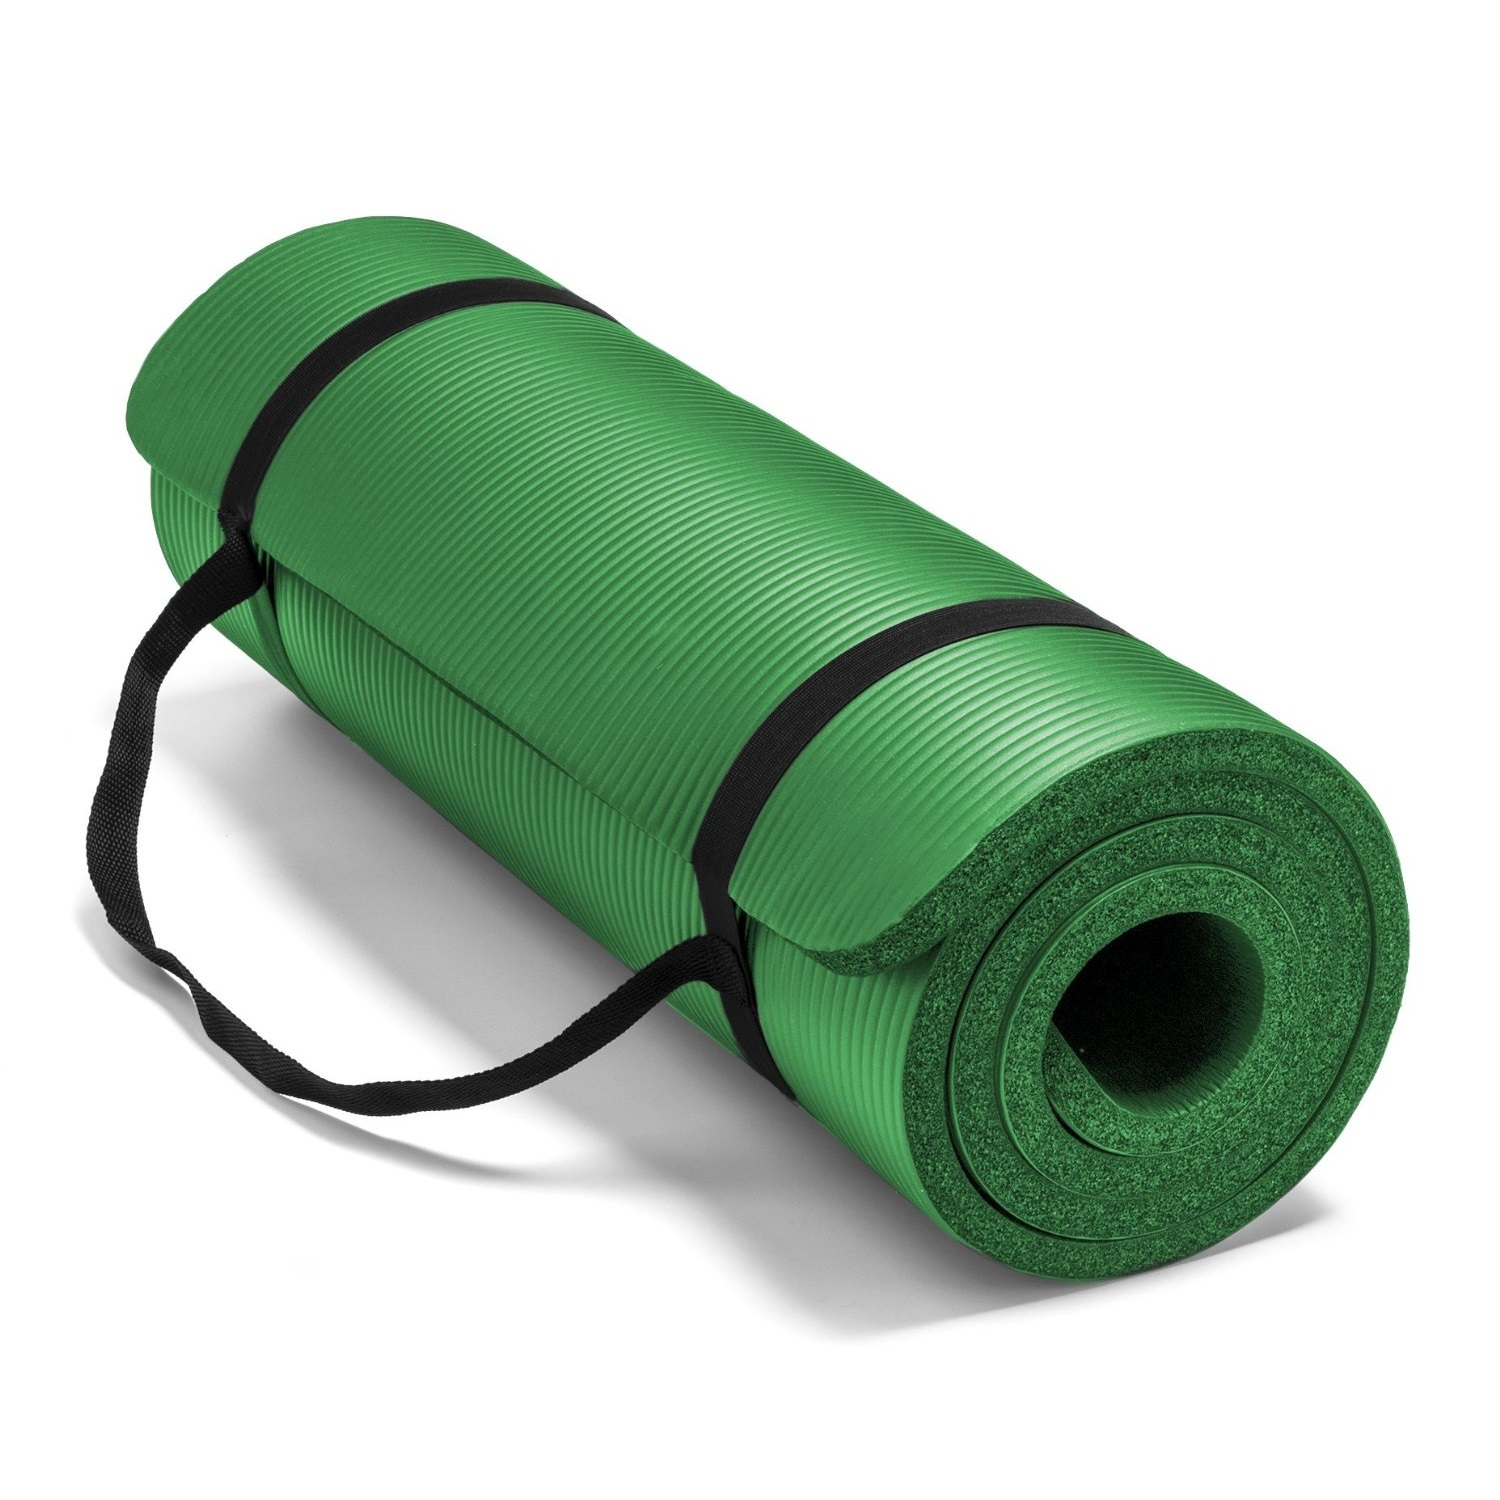 spoga premium 1/2 inch high density yoga mat with carrying strap green